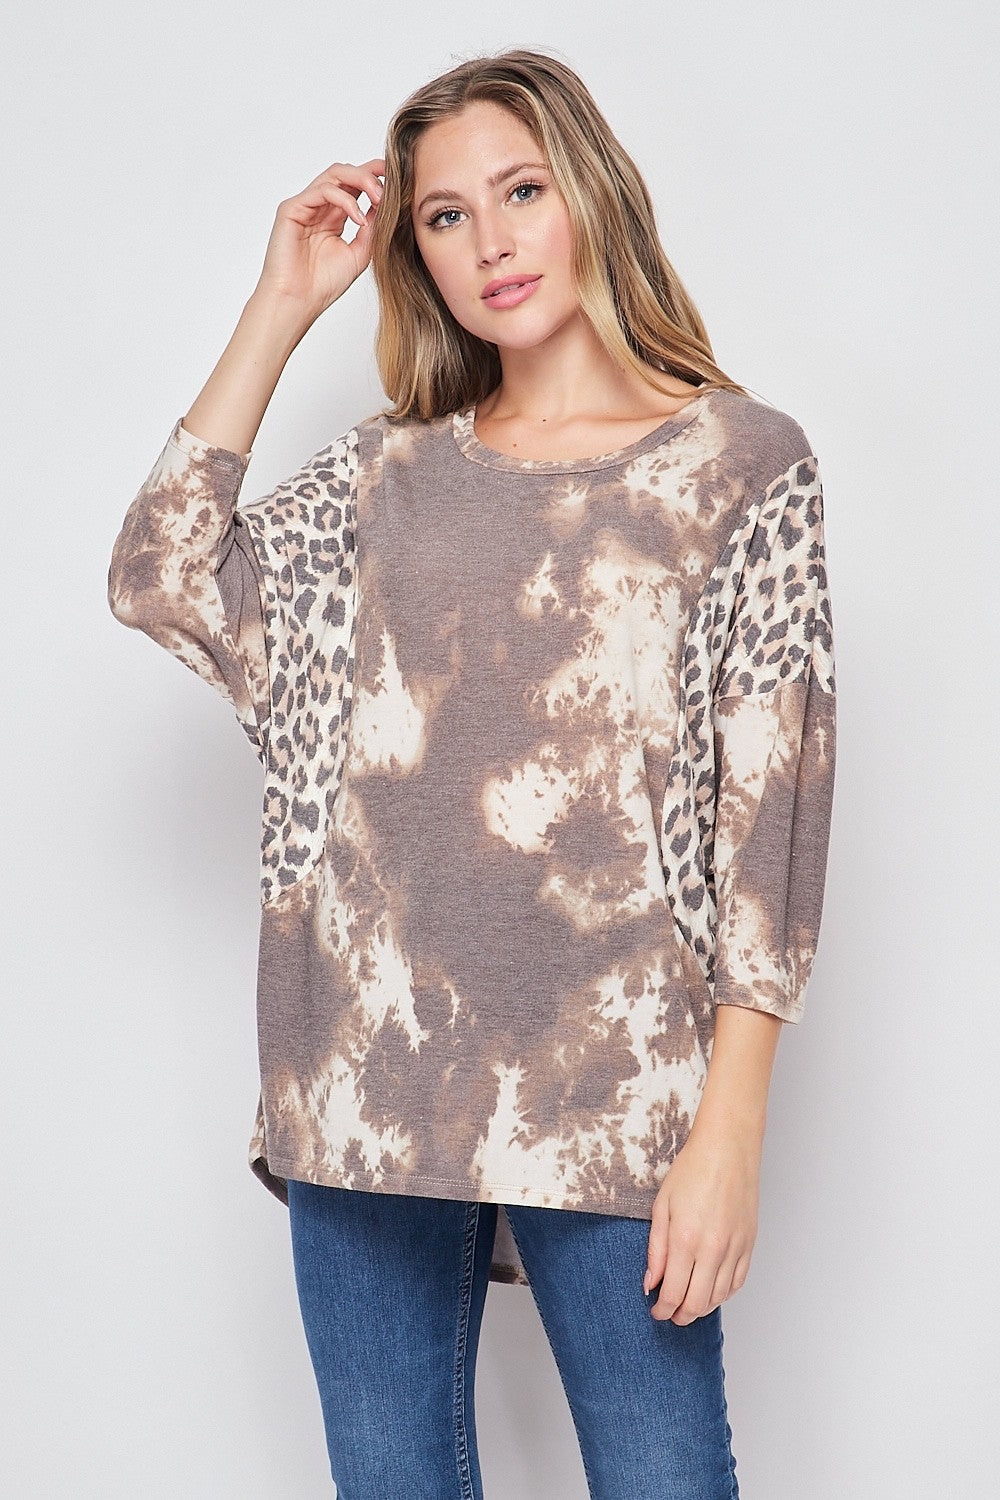 Scoop Neck Top - Taupe Brown